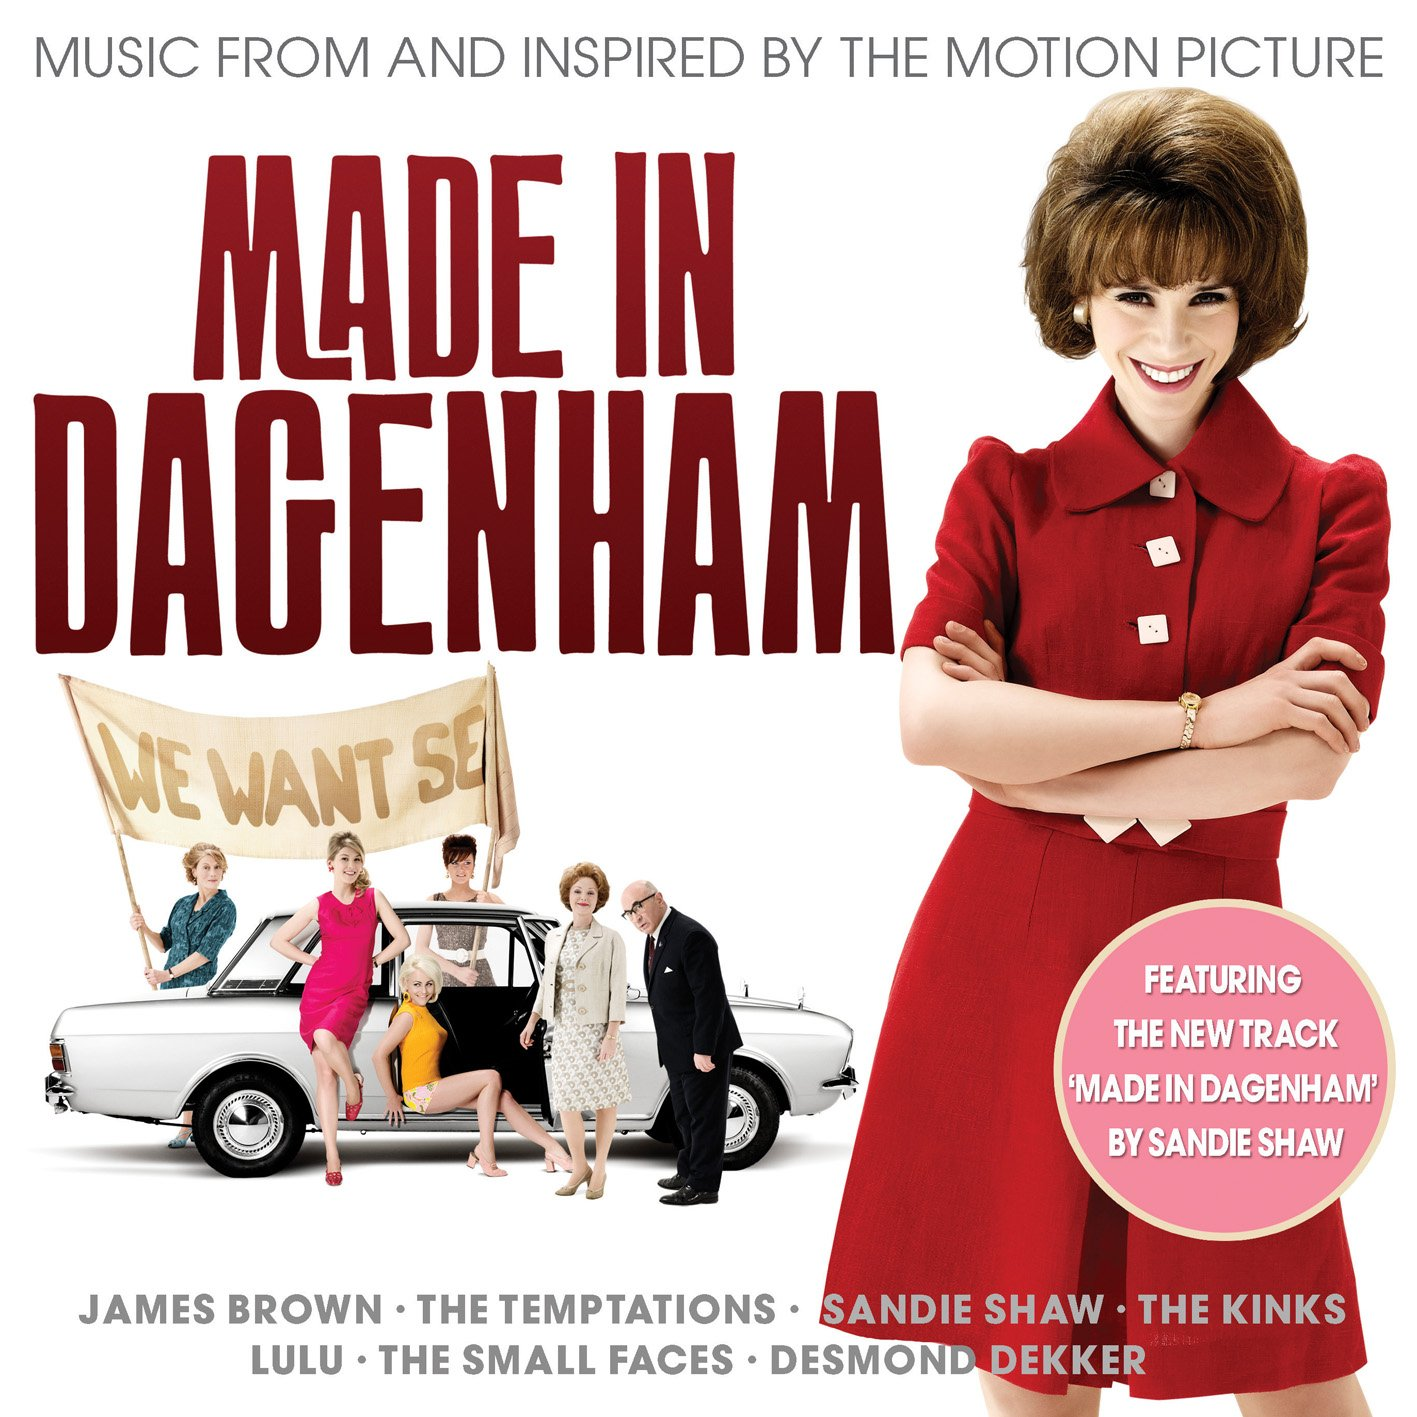 Made in Dagenham                                                                                                                                                                                                                                                                                                                                                                                                <span class=